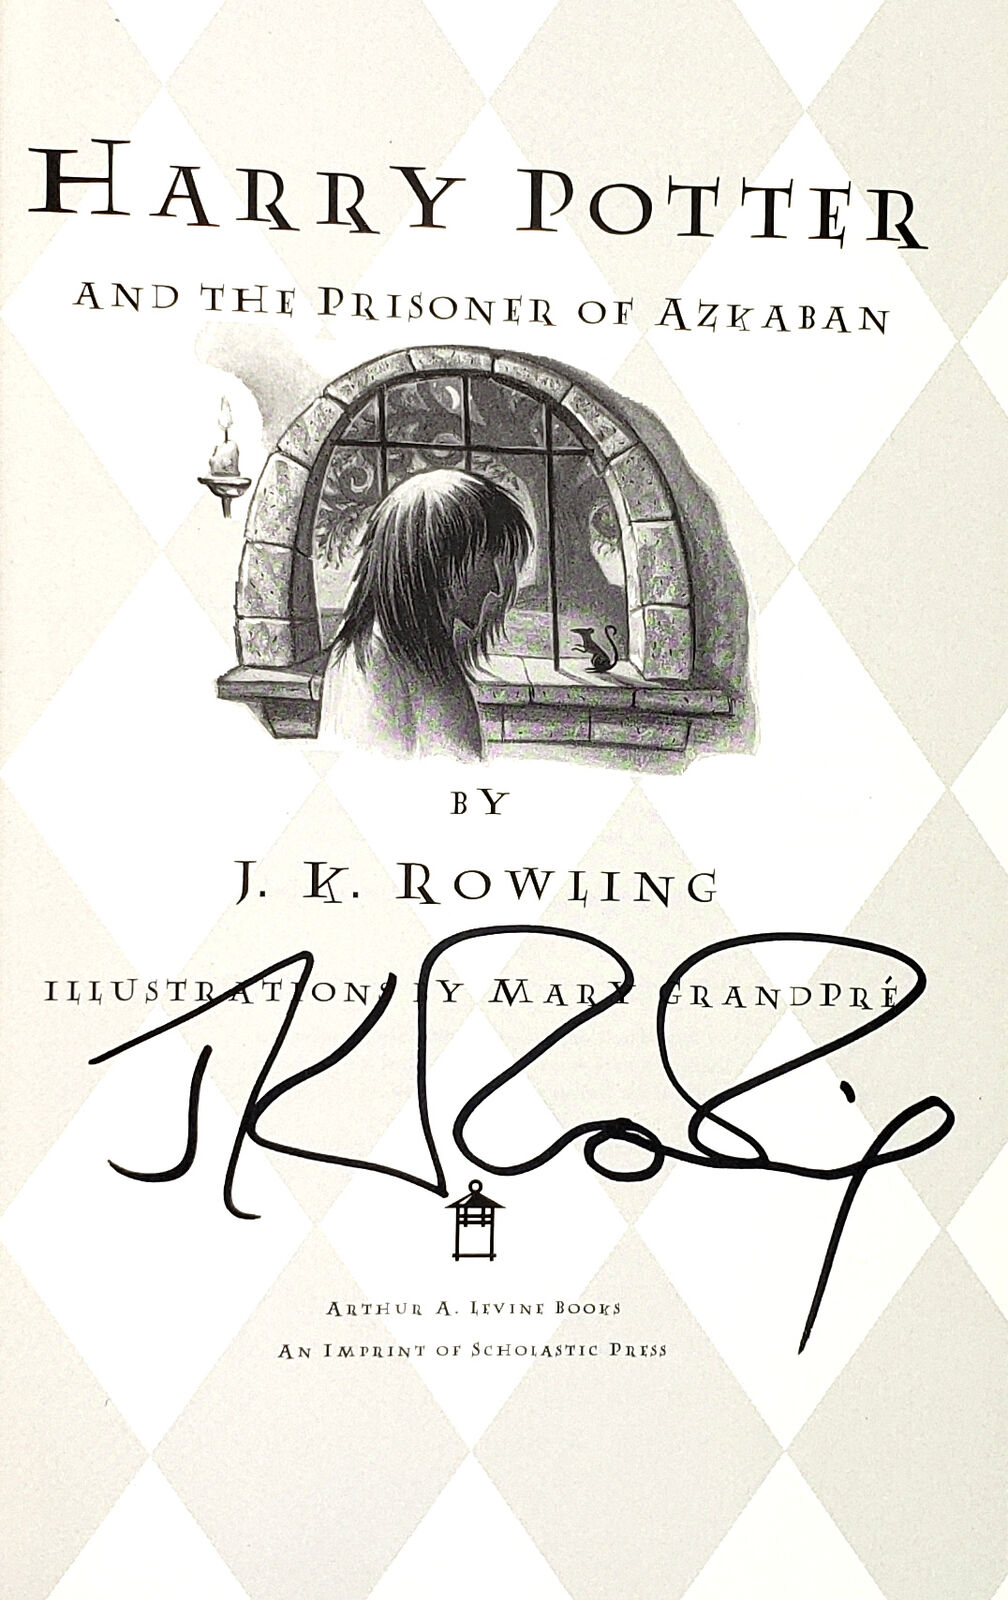 JK Rowling Forgery inside of a US Harry Potter and the Prisoner of Azkaban